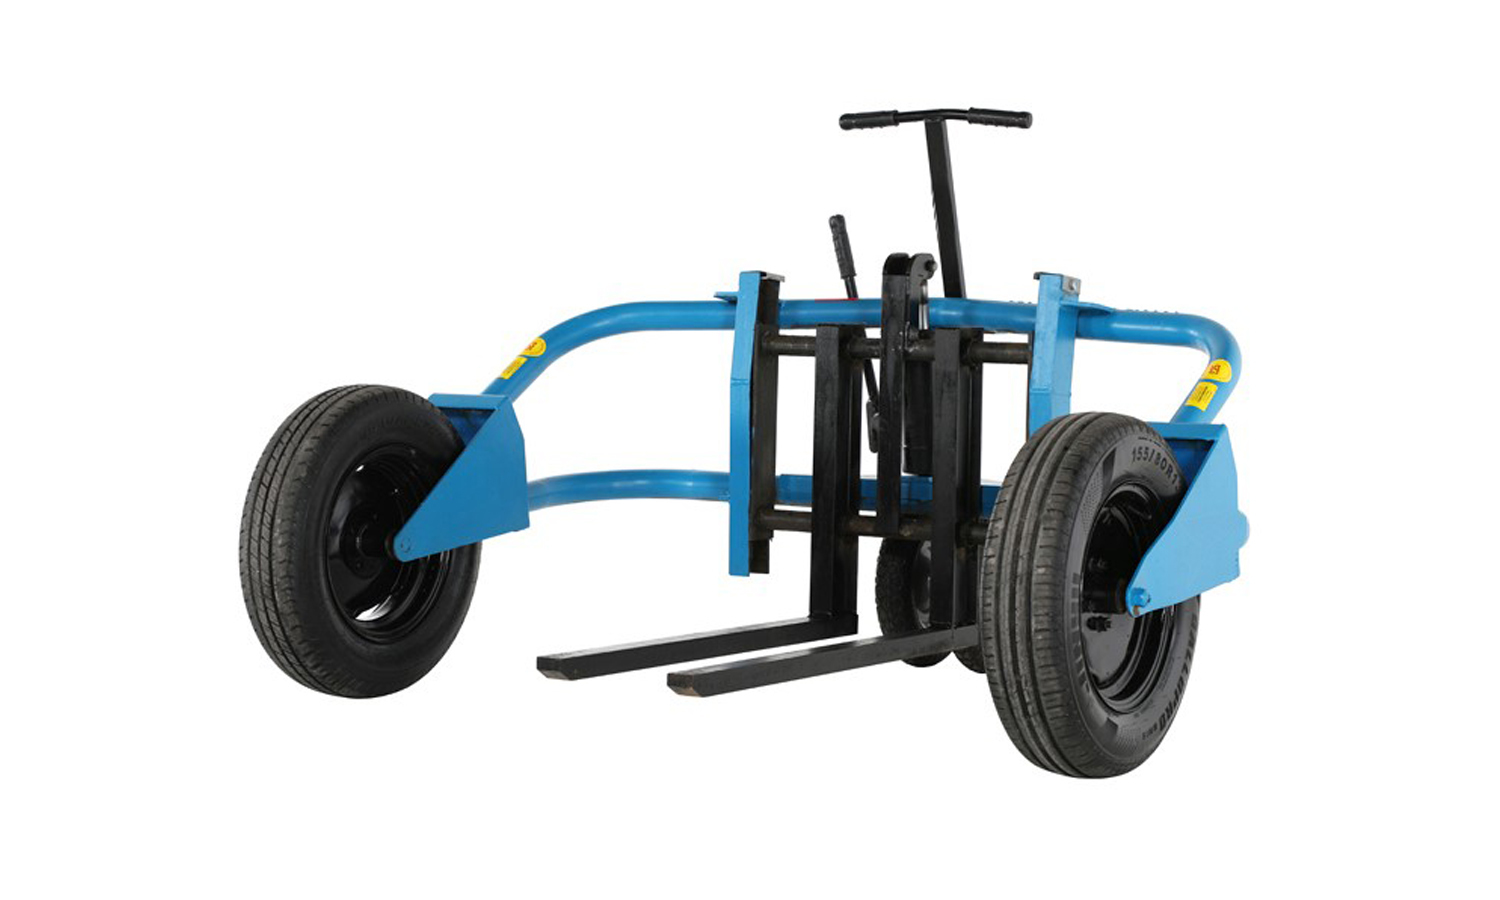 Pallet Cart product page image